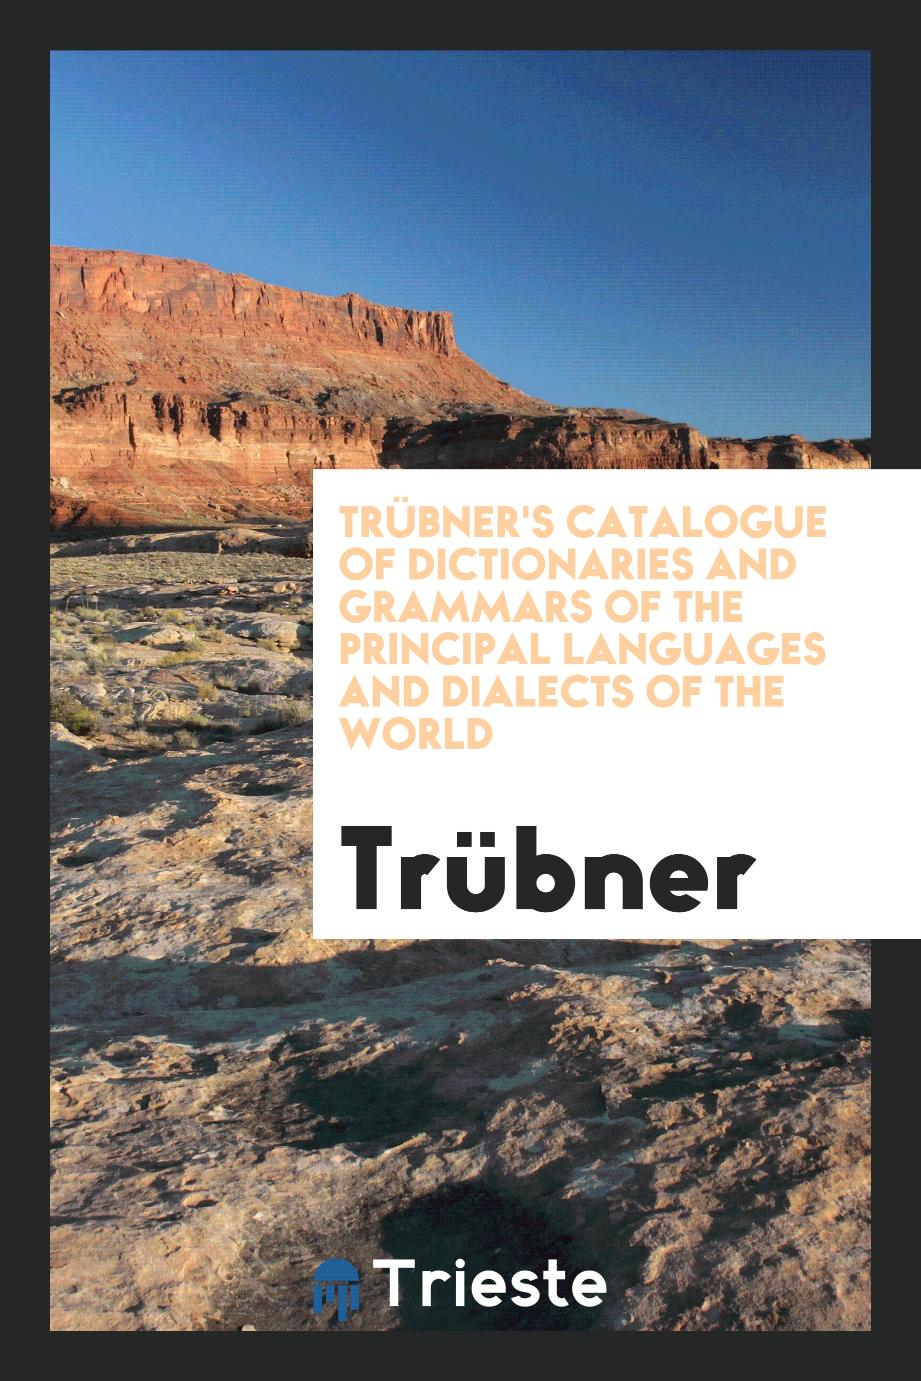 TrüBner's Catalogue of Dictionaries and Grammars of the Principal Languages and Dialects of the World